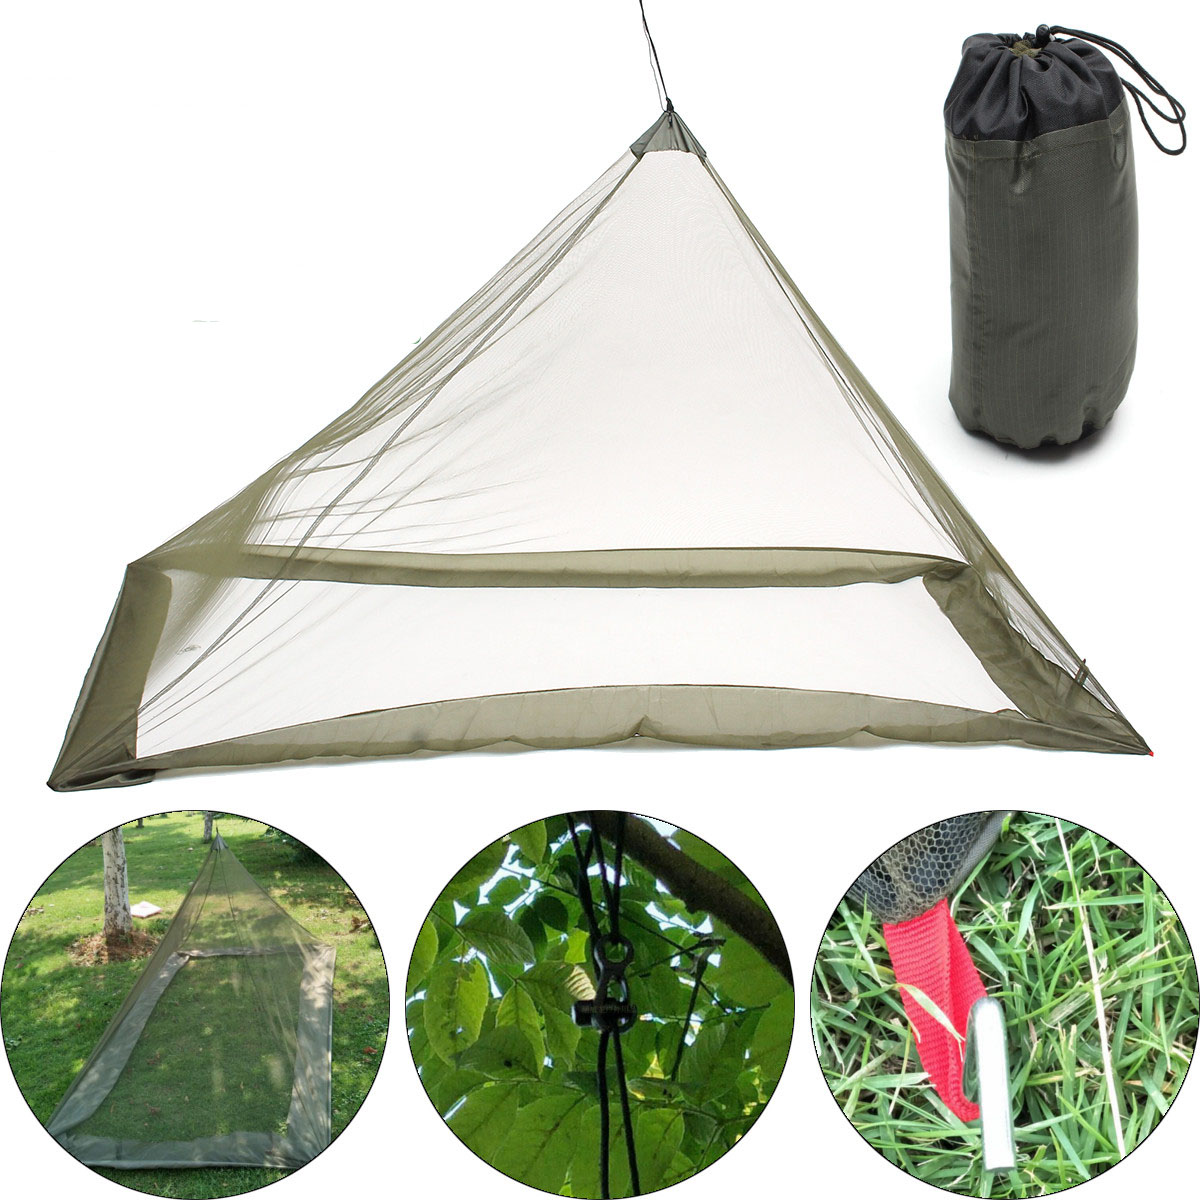 220x120x100cm Foldable Camping Hiking Tent Bed Portable